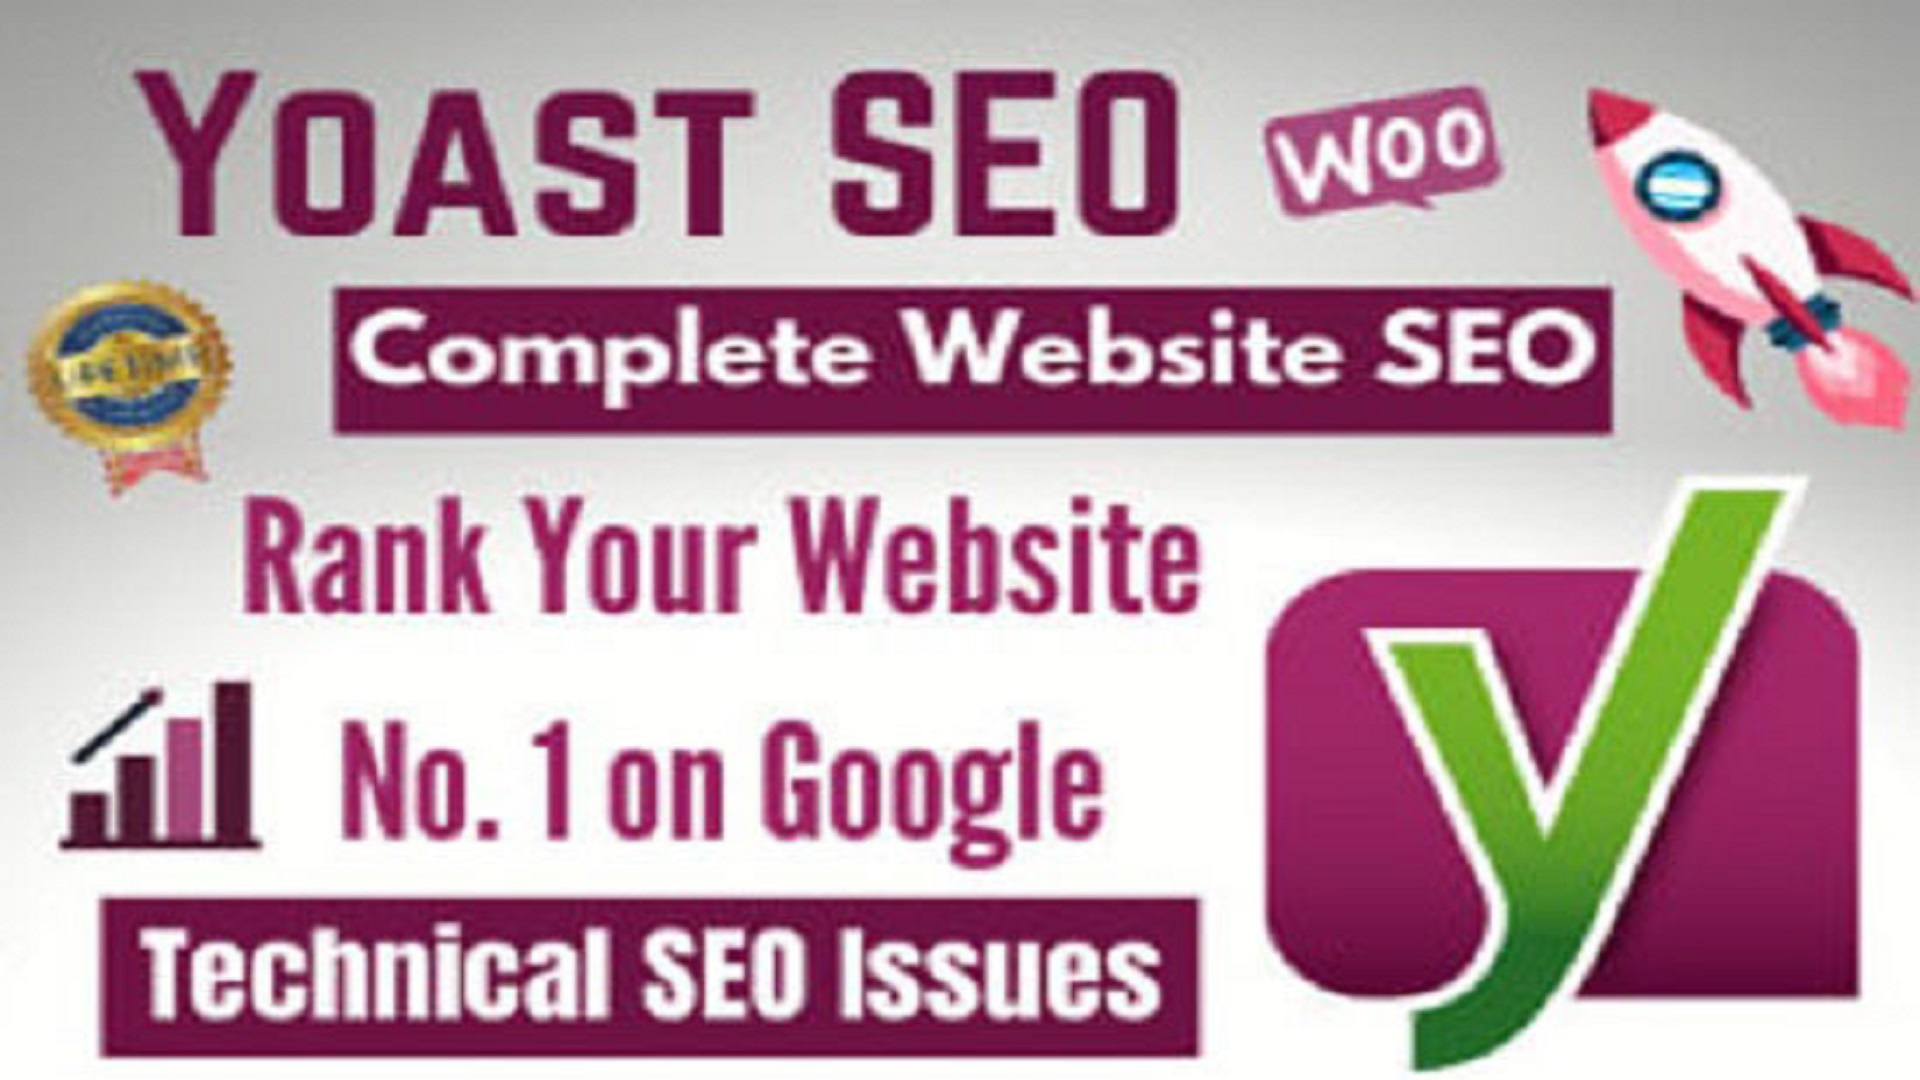 I will WordPress Yoast SEO on page optimization for ranking google search results